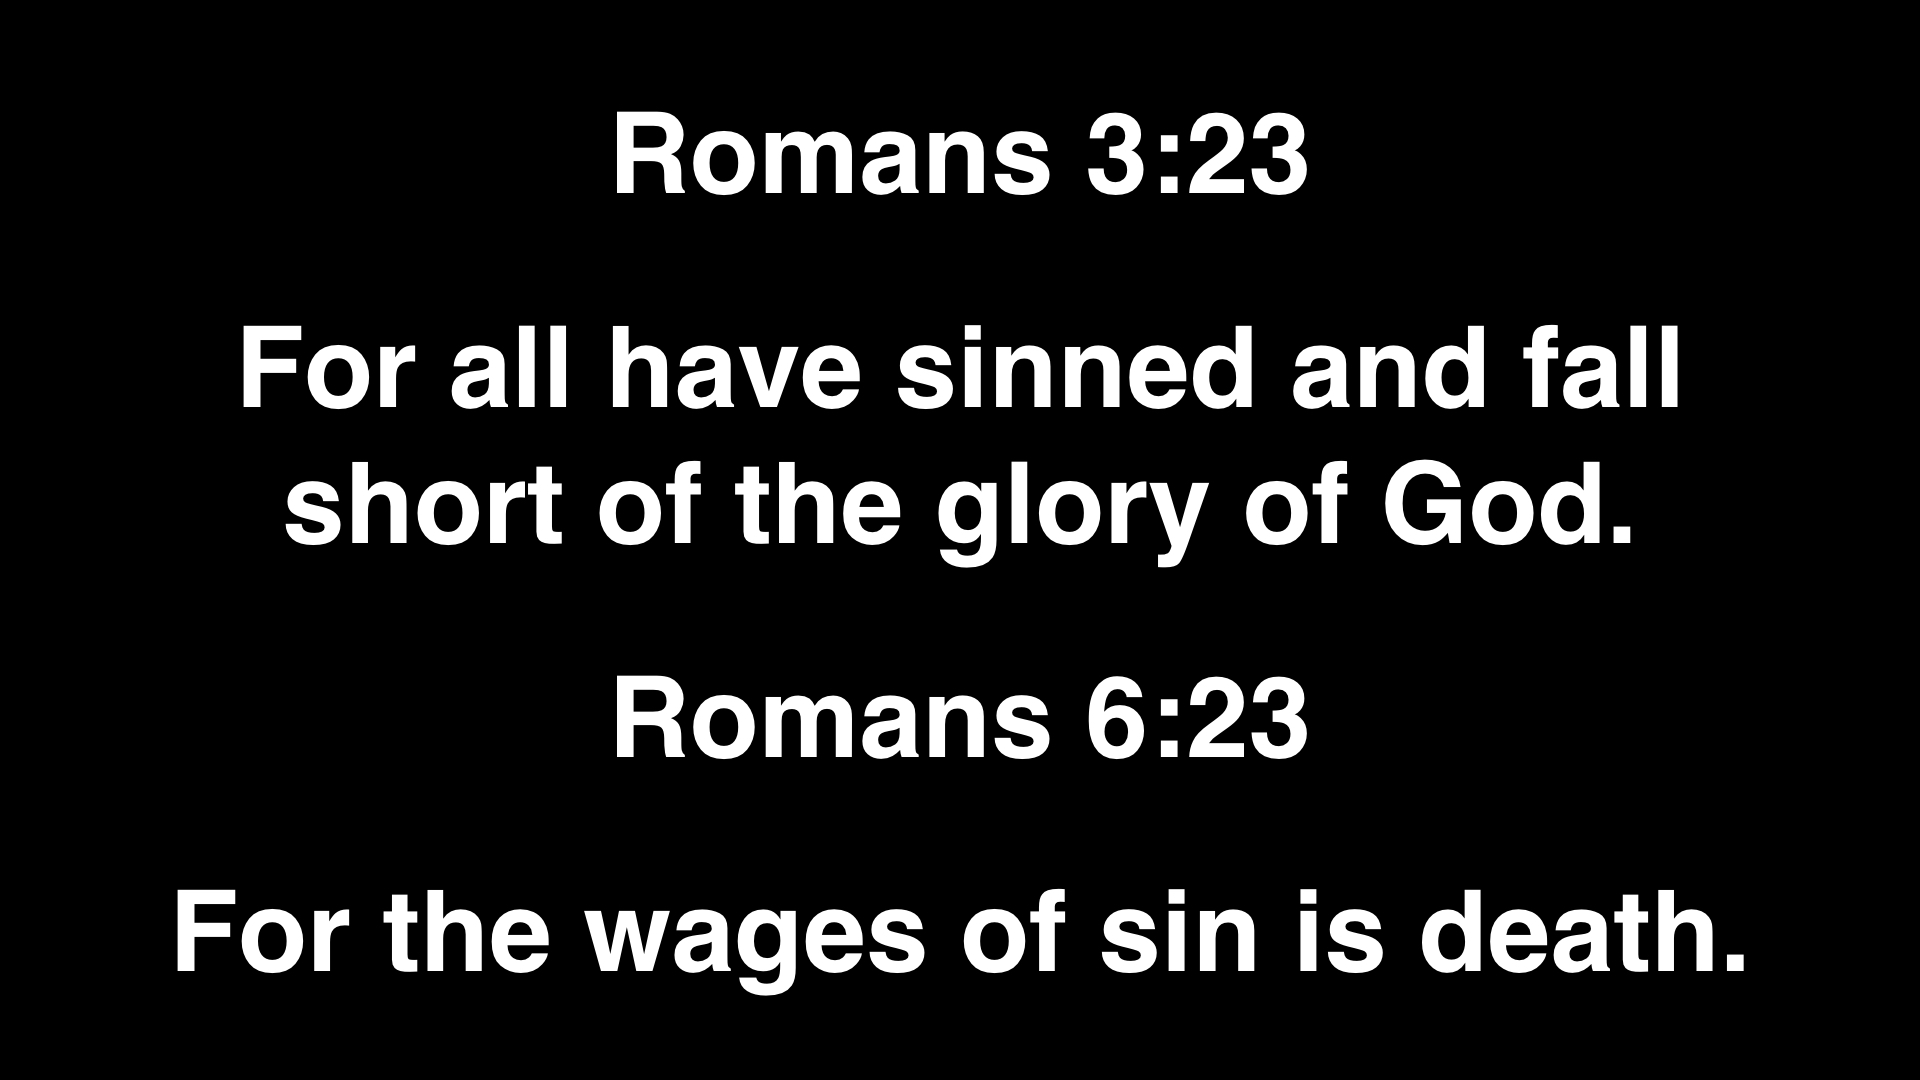 Why don't you read out loud Romans 3:23.What does it say? And now read Romans 6:23 out loud. What does it say? That's bad news, isn't it? But there is Good News.